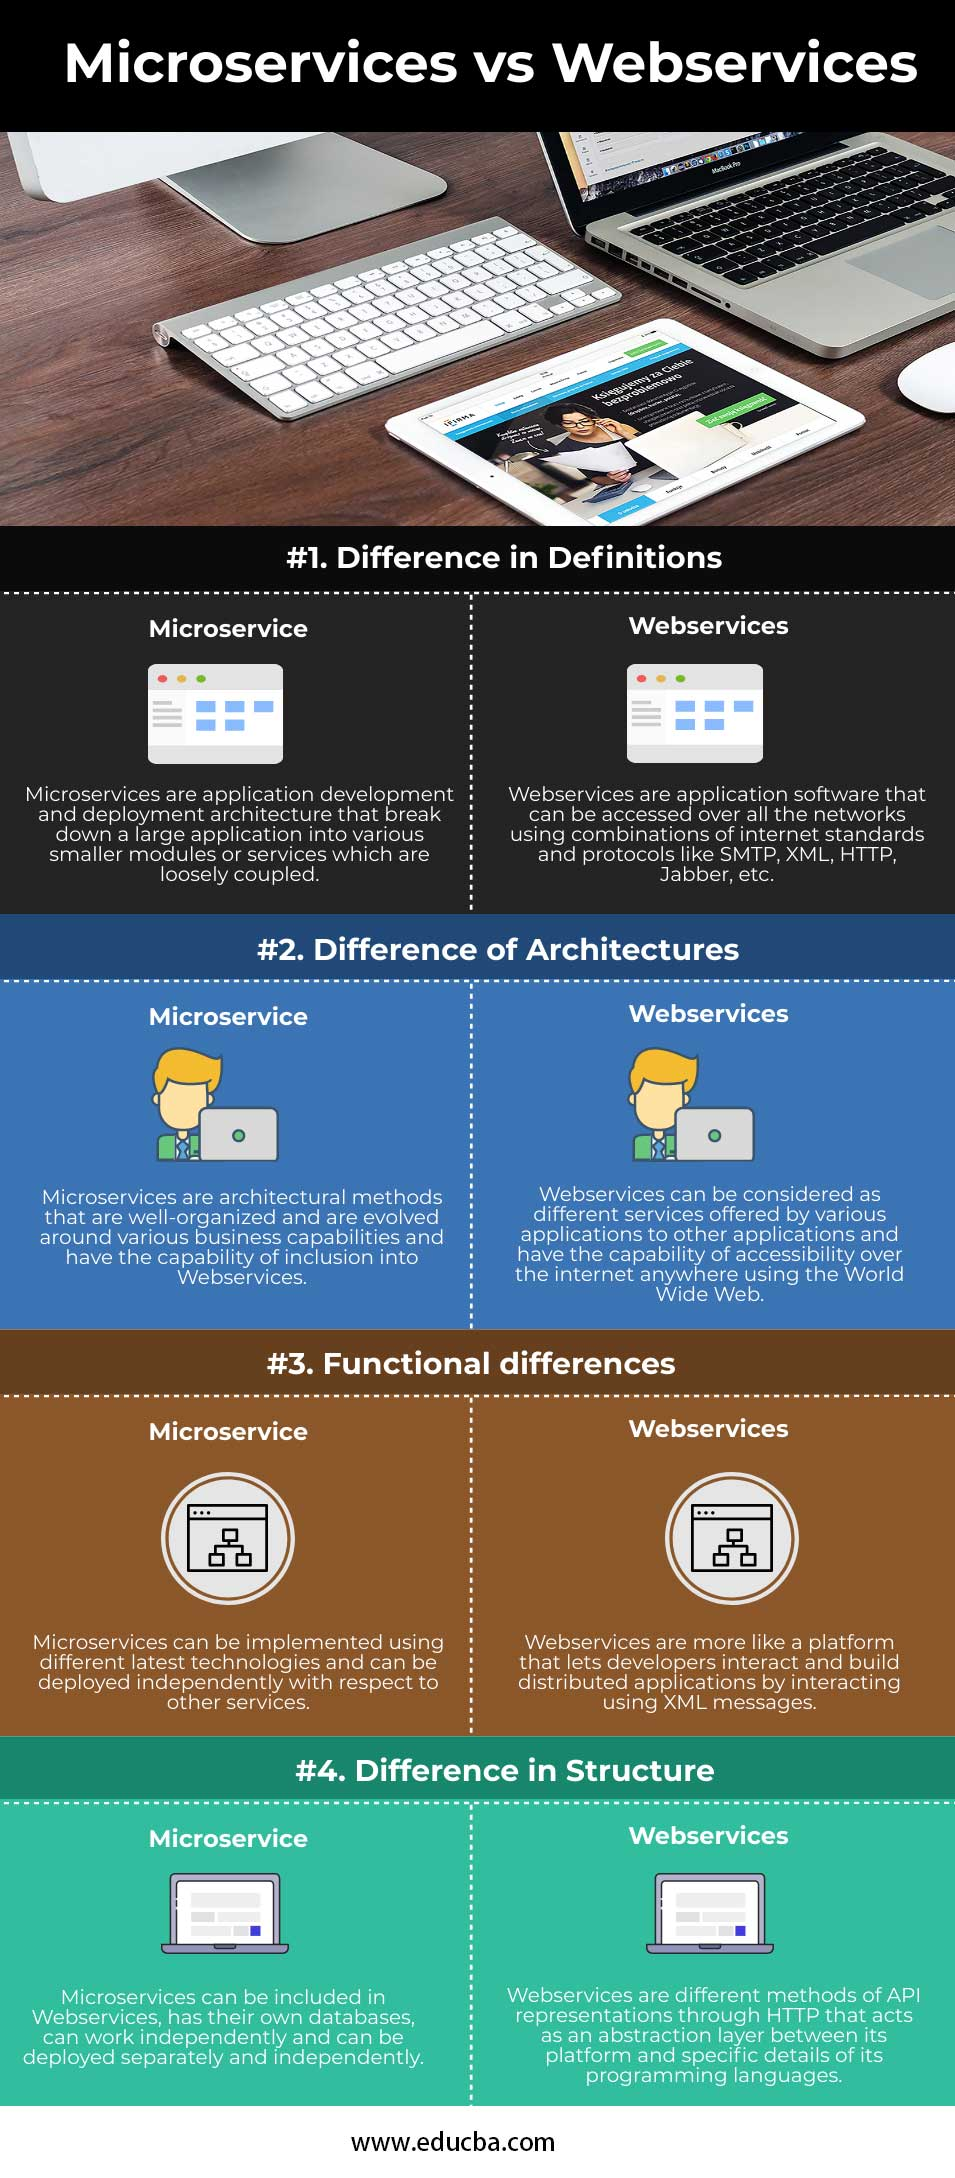 Microservices-vs-Webservices-info